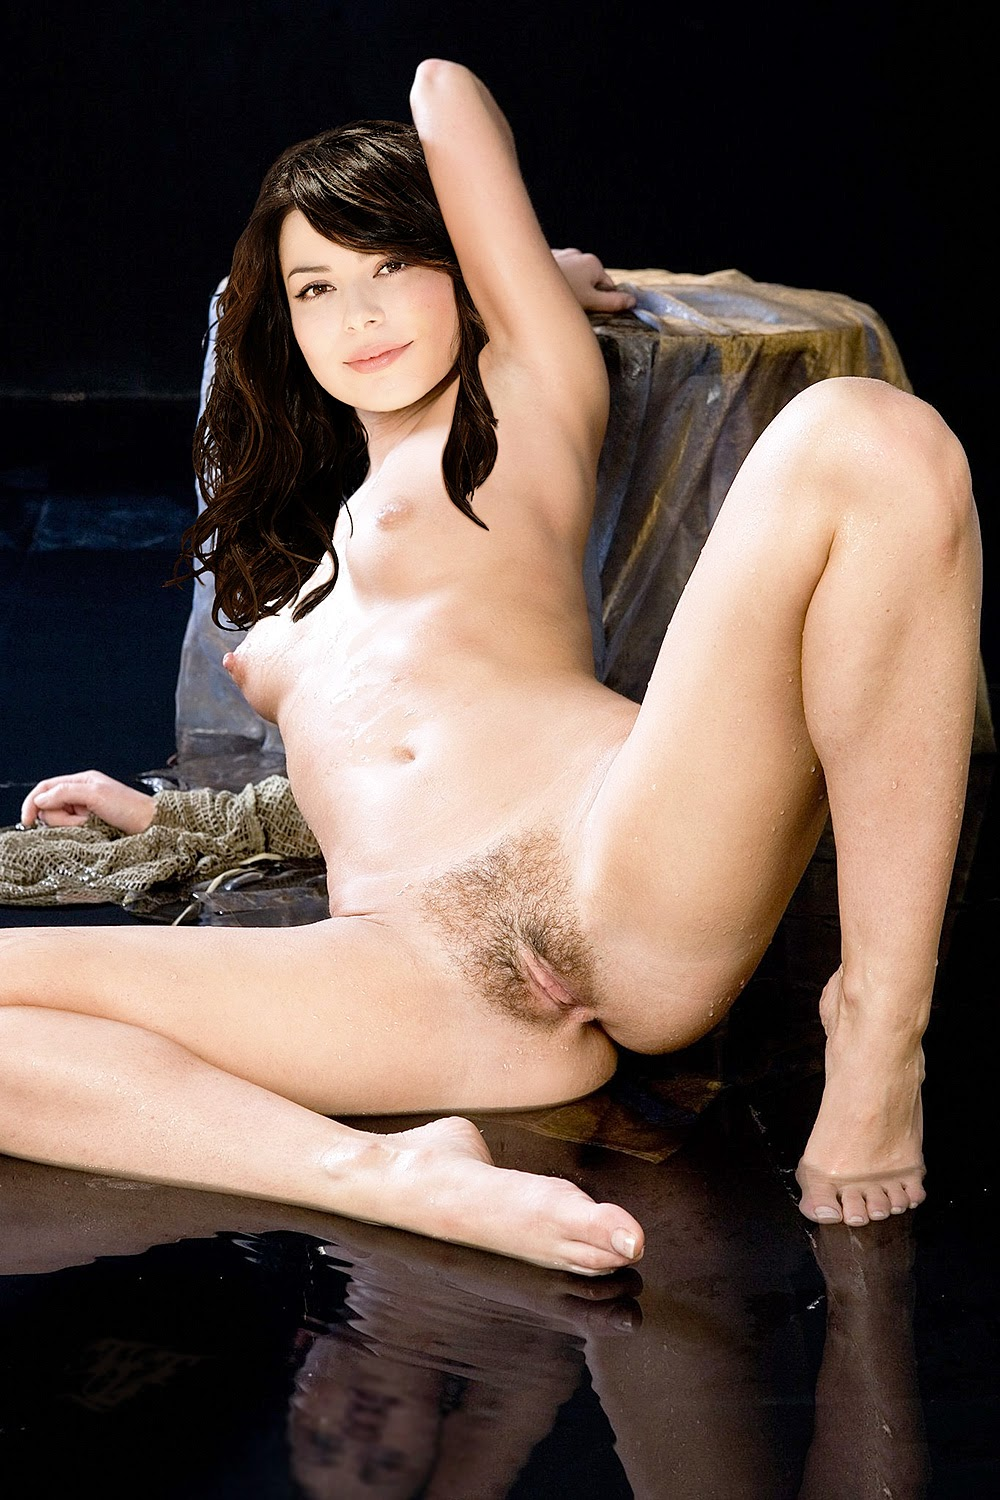 Speaking, recommend miranda cosgrove big boobs nude